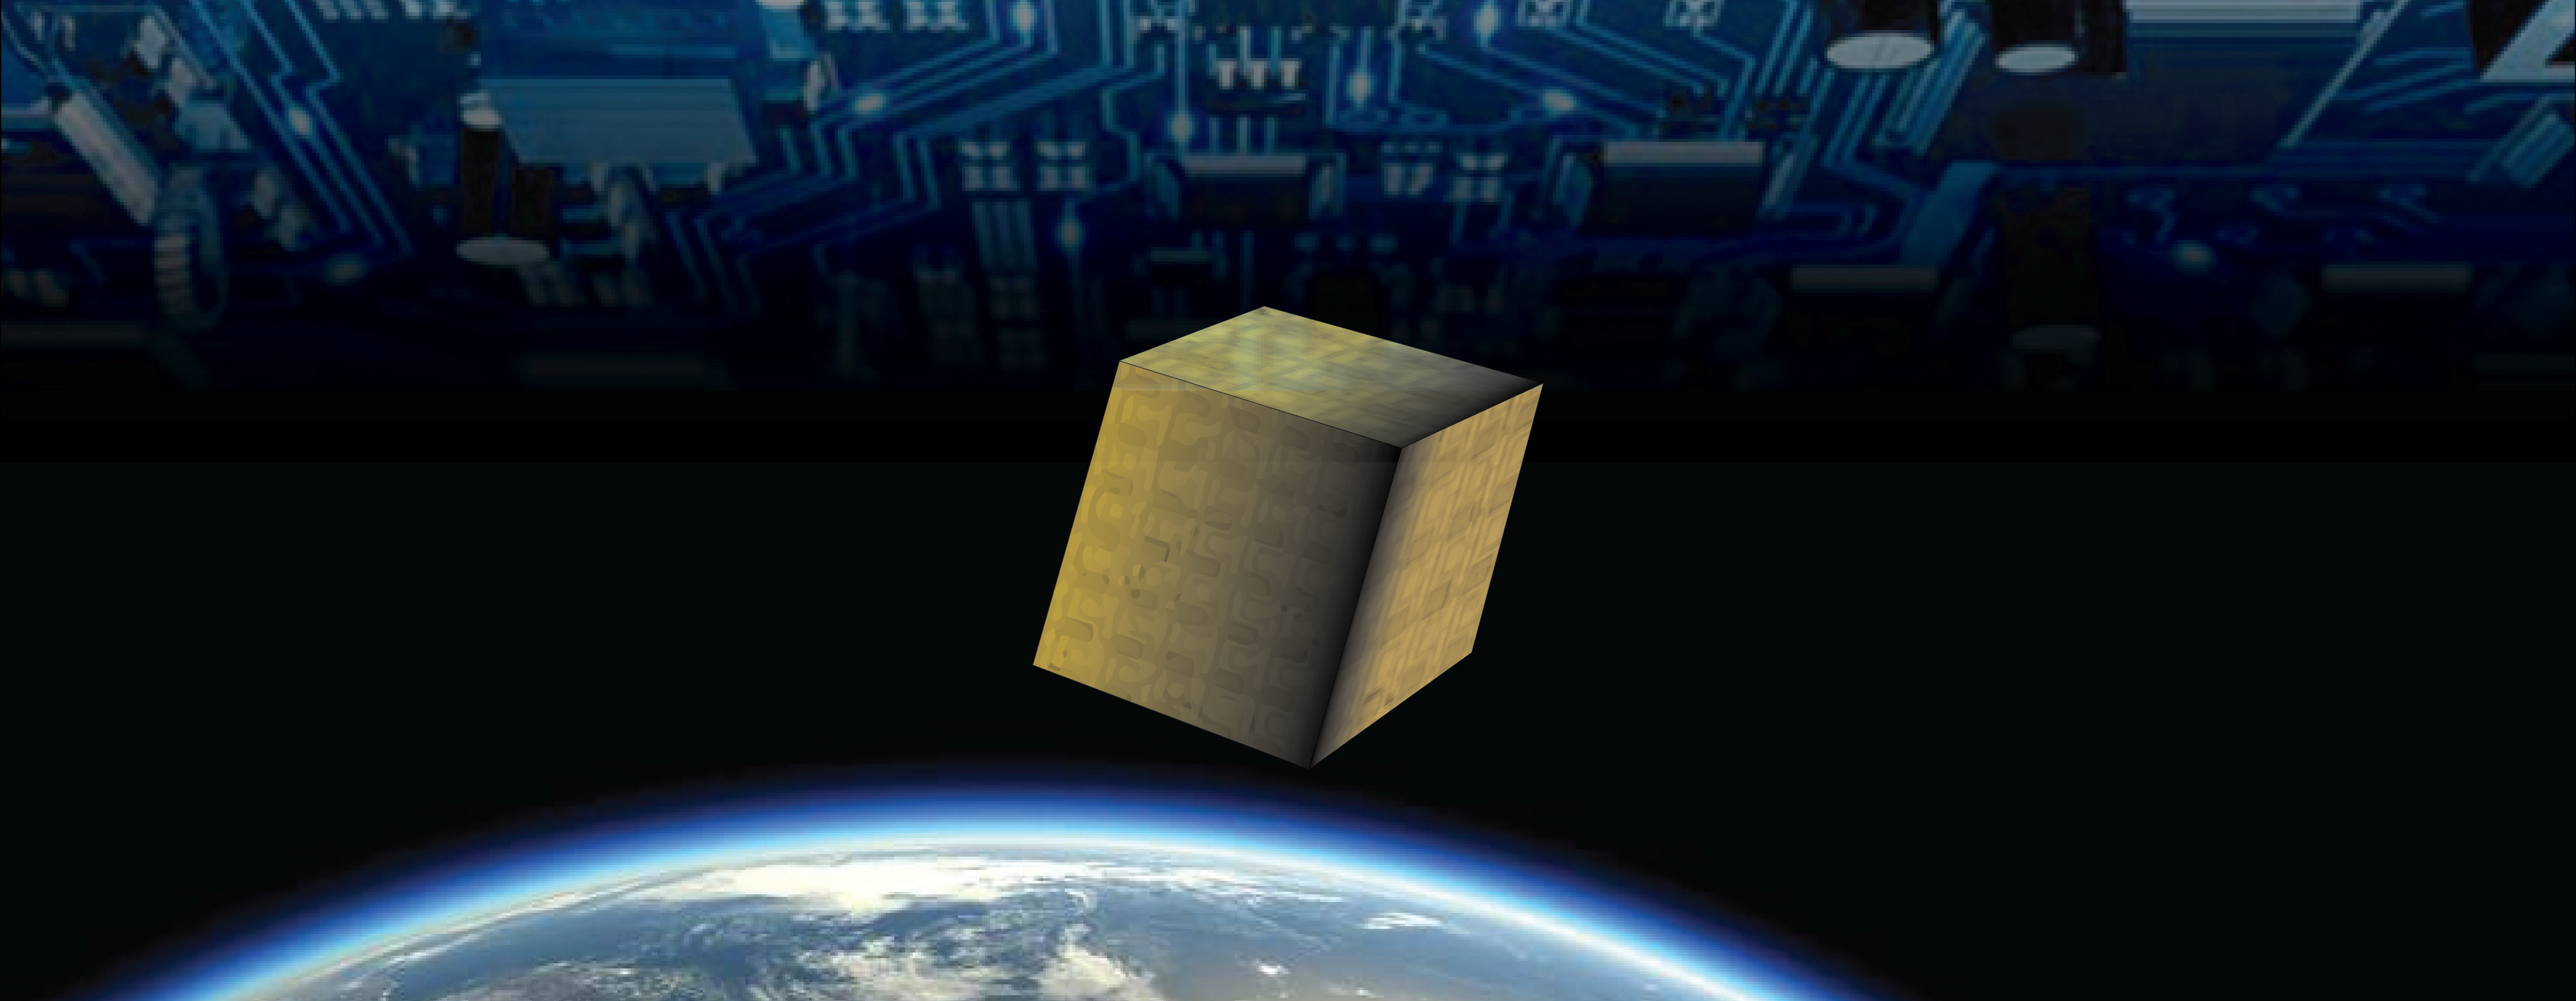 3D integrated systems-in-cube interfacing the real world to electronic devices